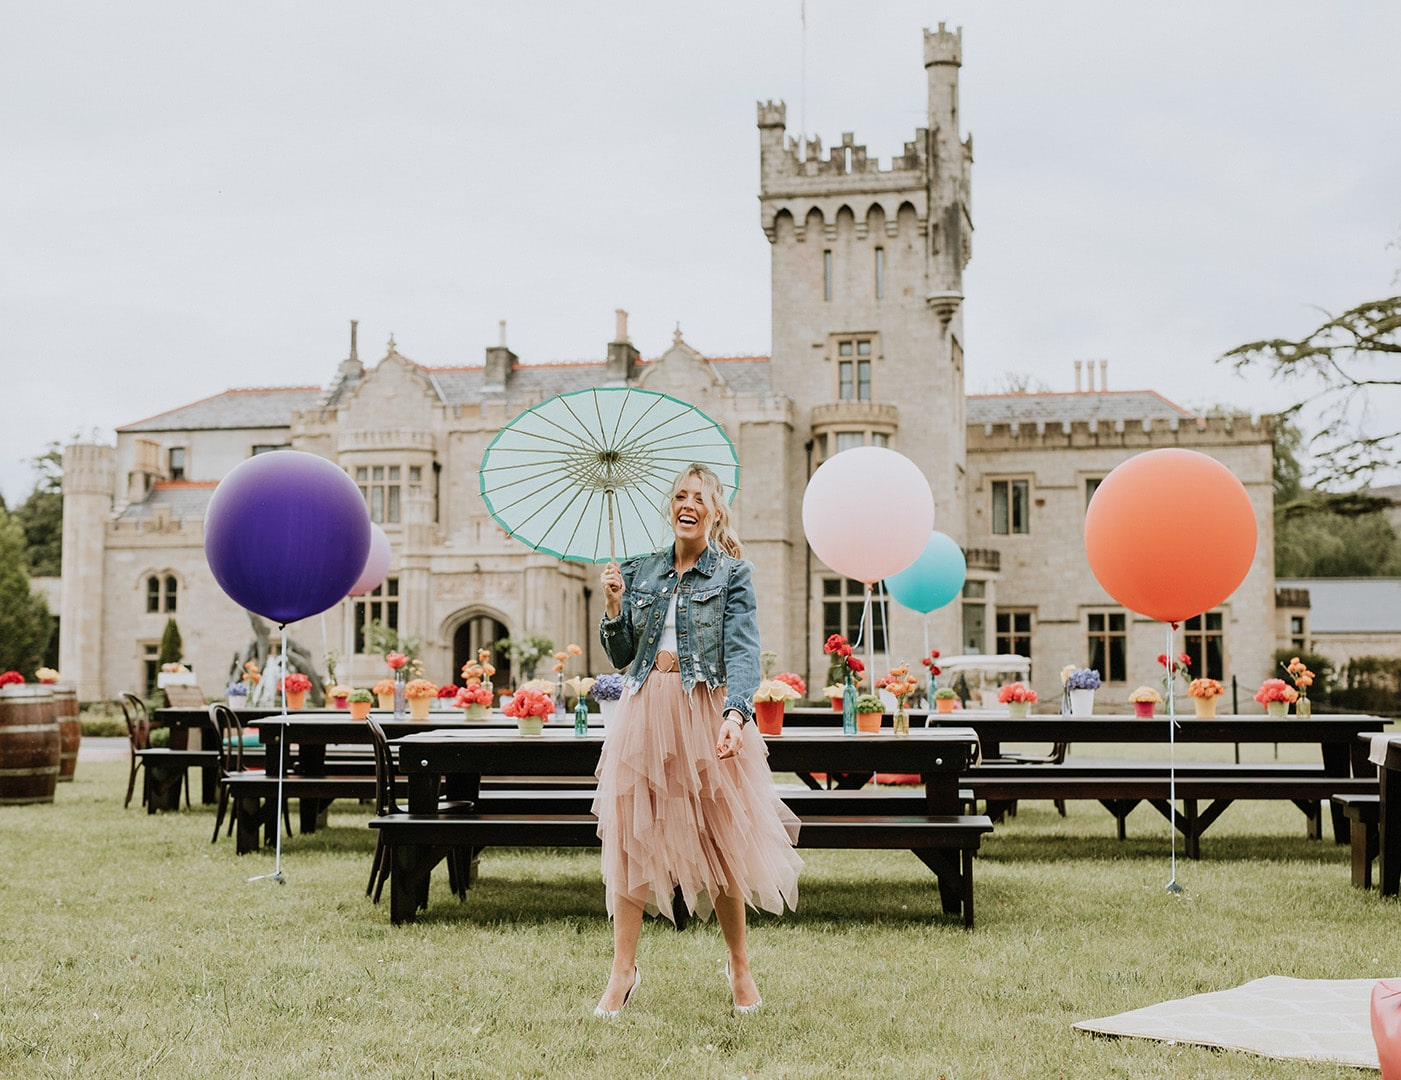 Private Parties, Party Planner, Corporate event management, Corporate Events, Event Planner in Ireland, Destination Events, Olivia Buckley International